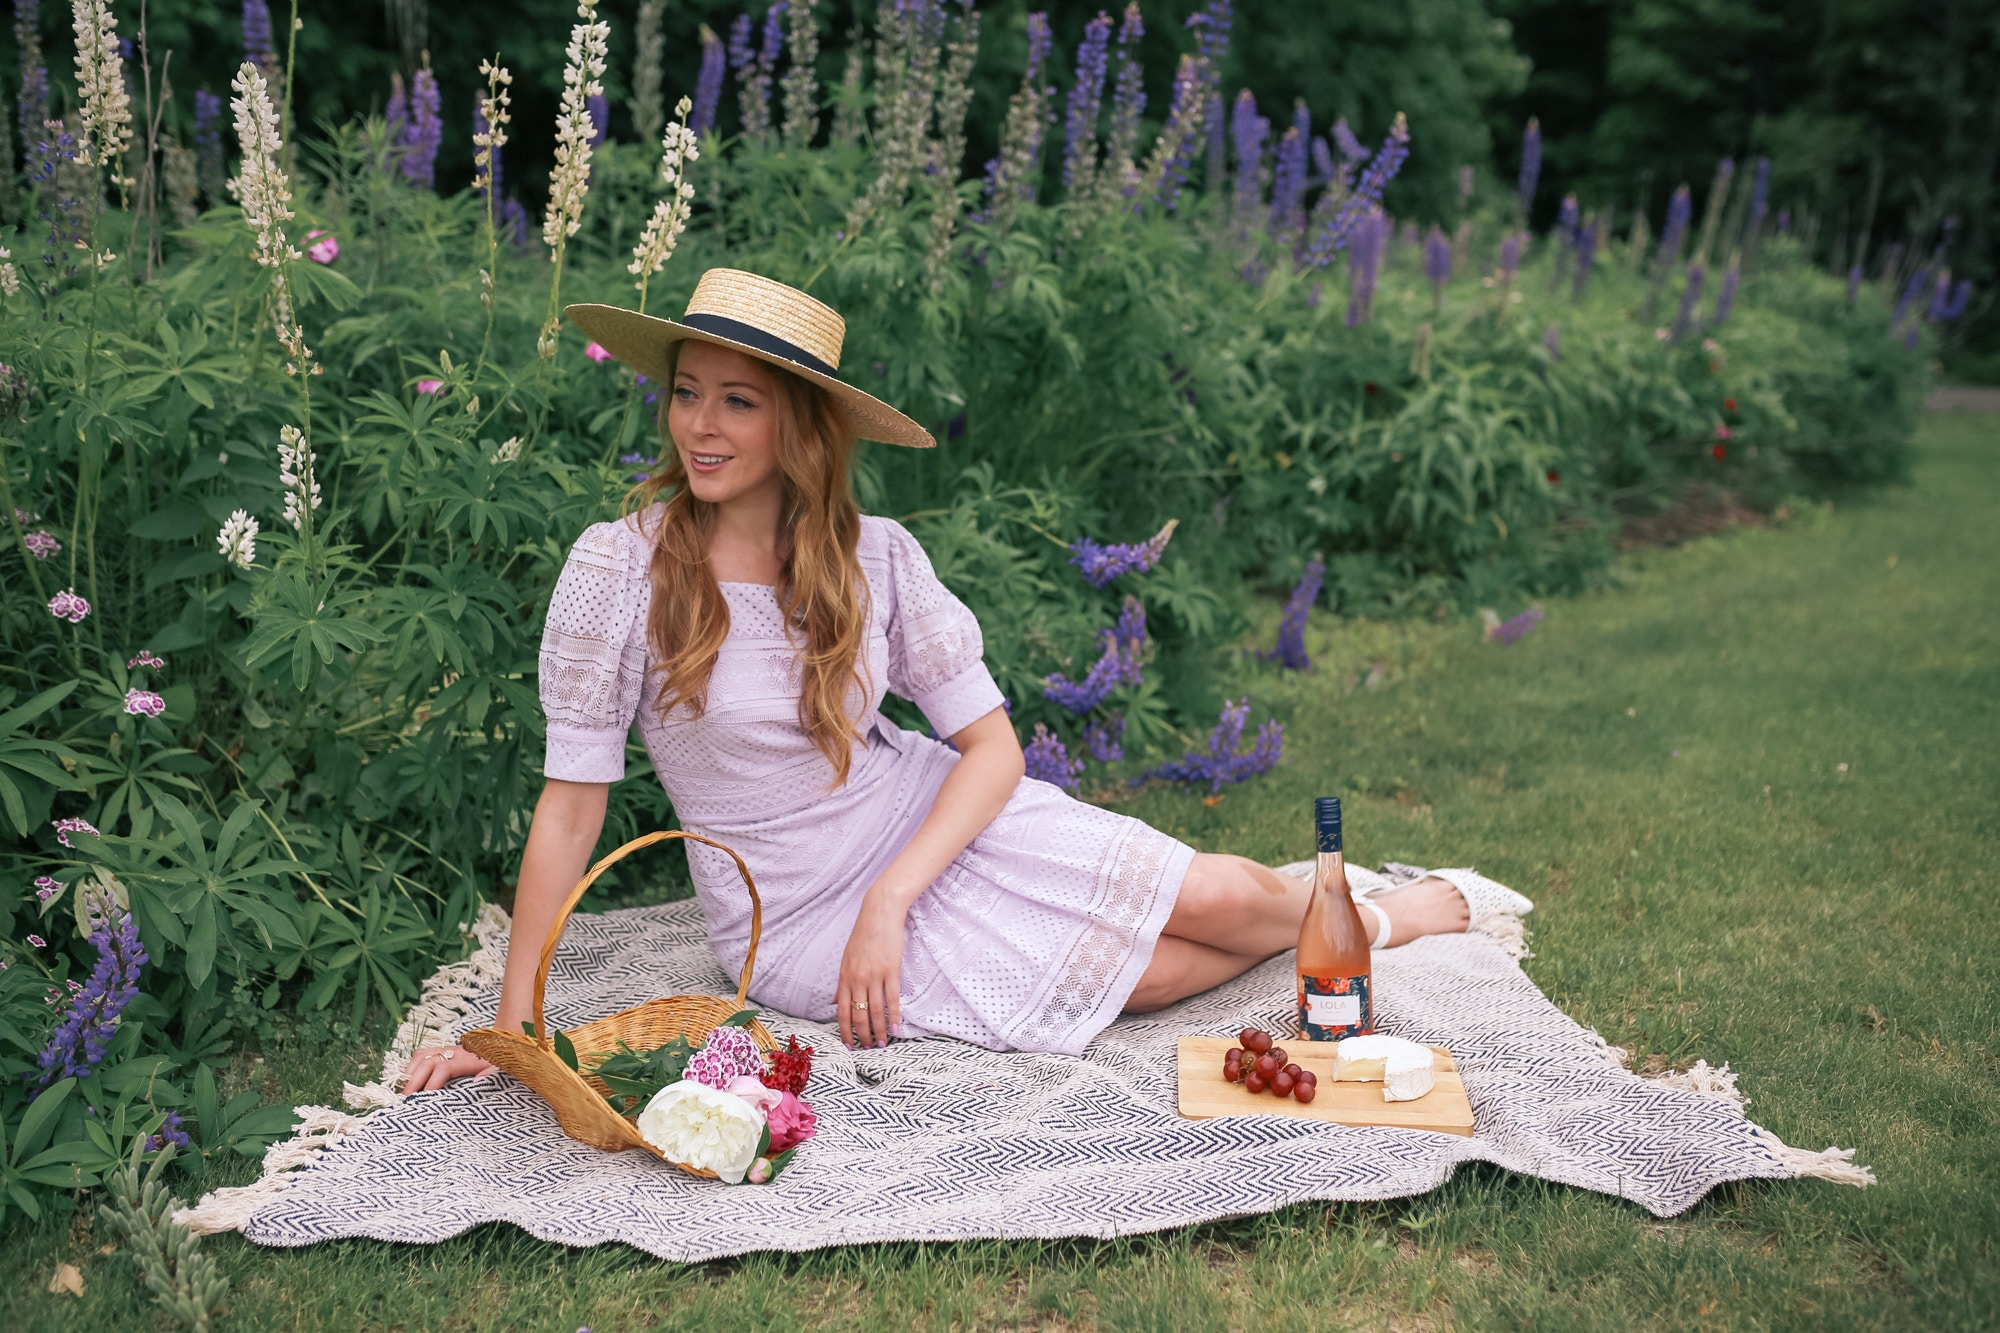 The Prettiest vintage picnic: Rachel Parcell Dress Review - Purple Hush Square Neck Lace Dress.